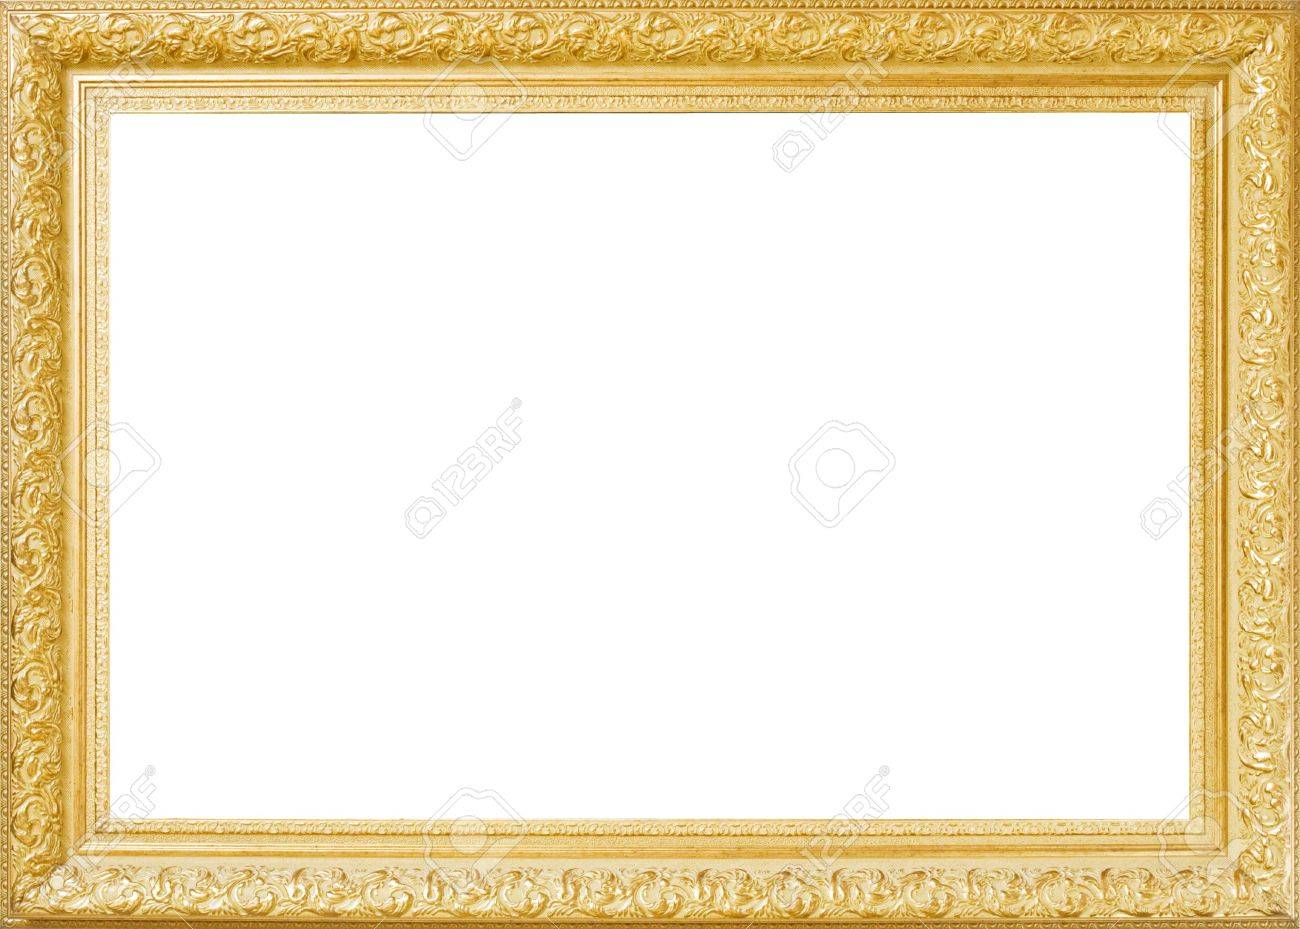 Baget Old Frame Isolated On White Stock Photo, Picture And Royalty ...